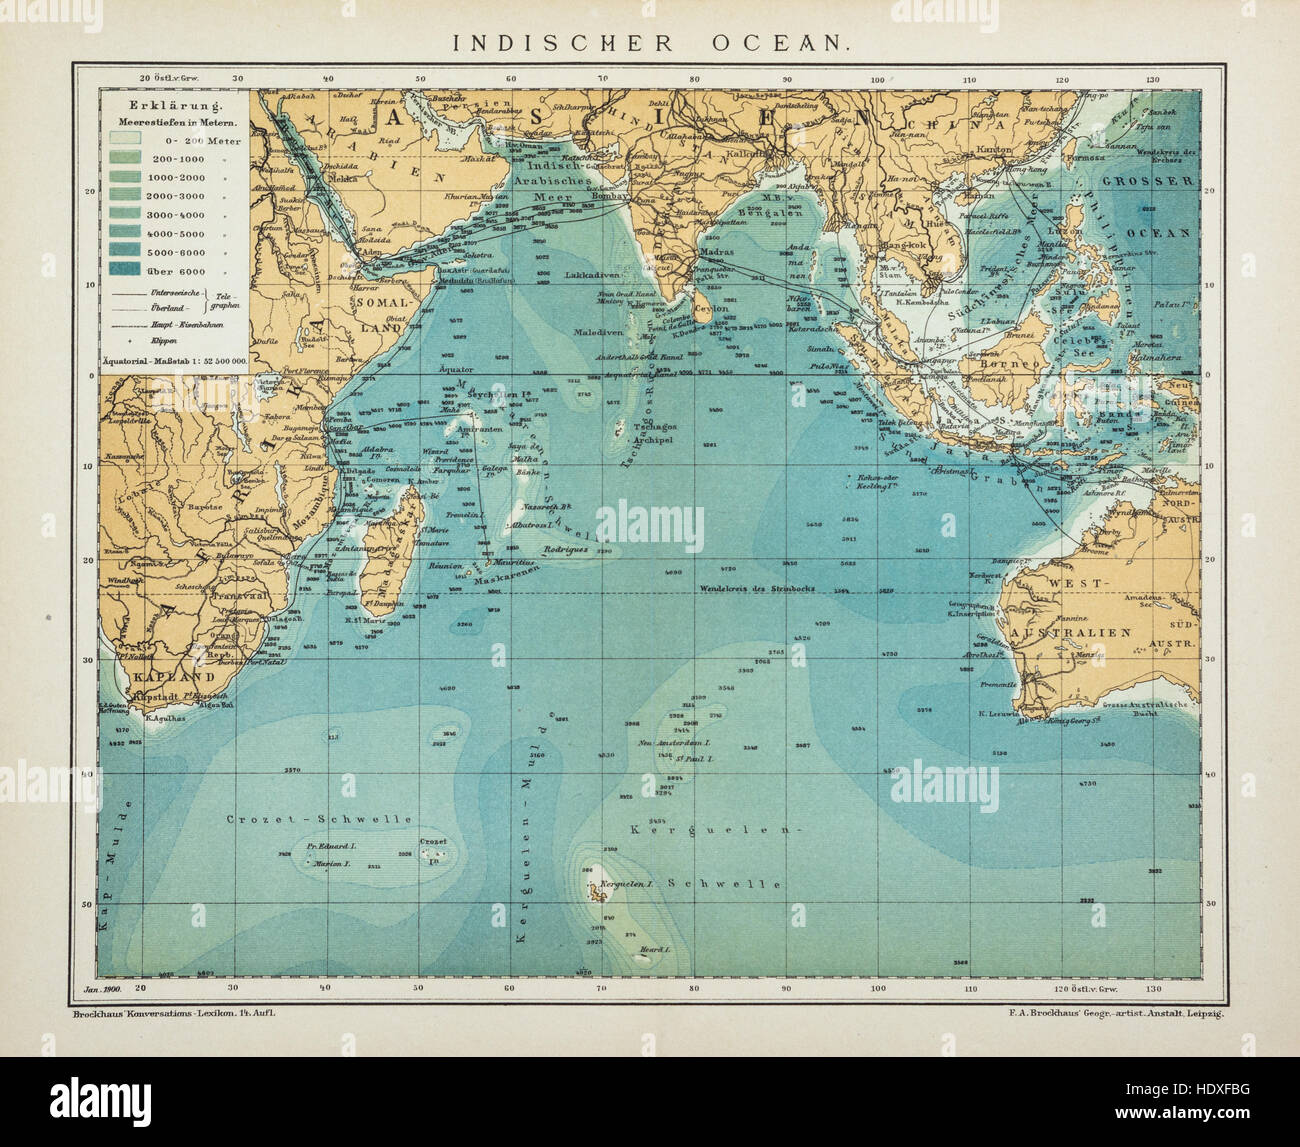 Indian Ocean Old Antique Map Vintage Look Stock Photo - Vintage looking world map